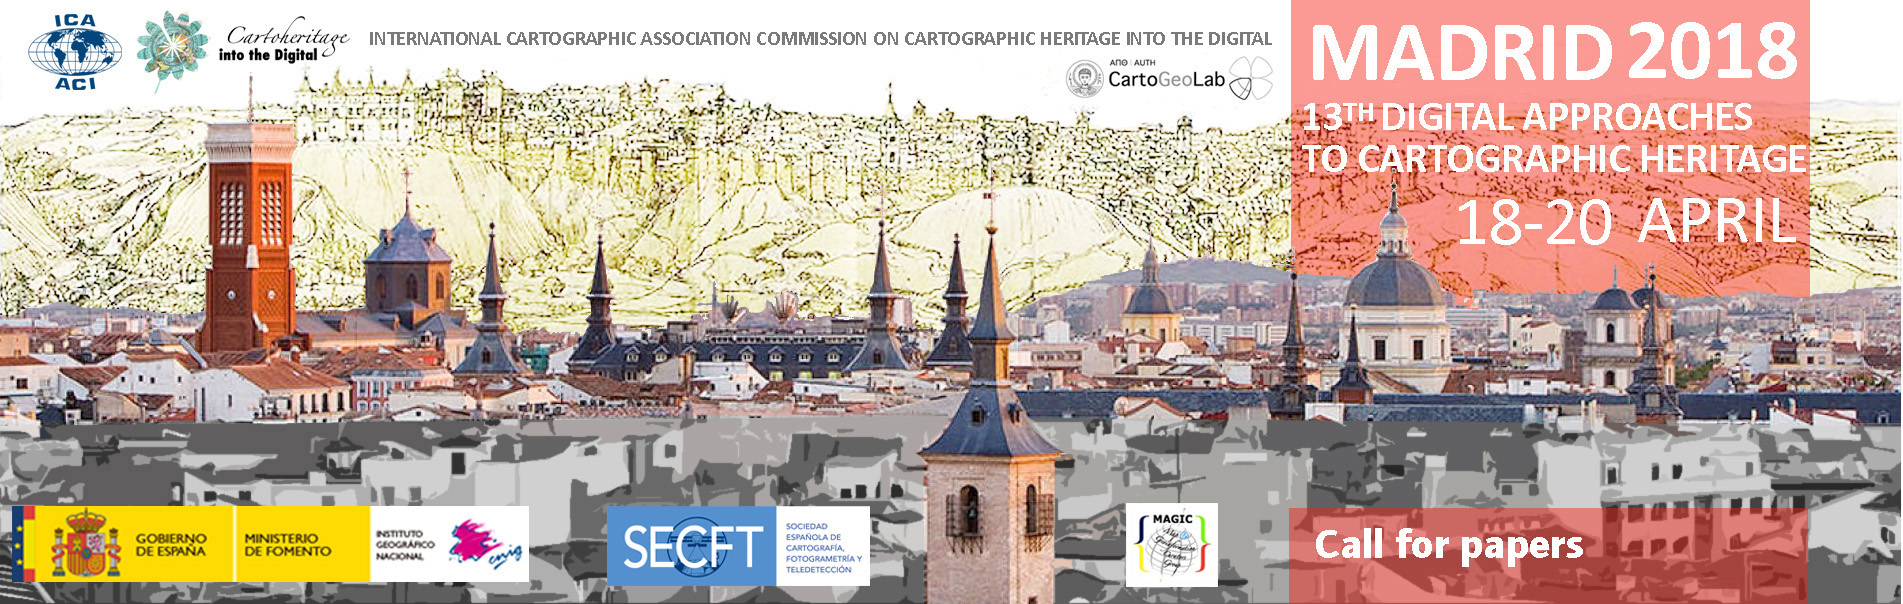 13º Conferencia Digital Approaches to Cartographic Heritage